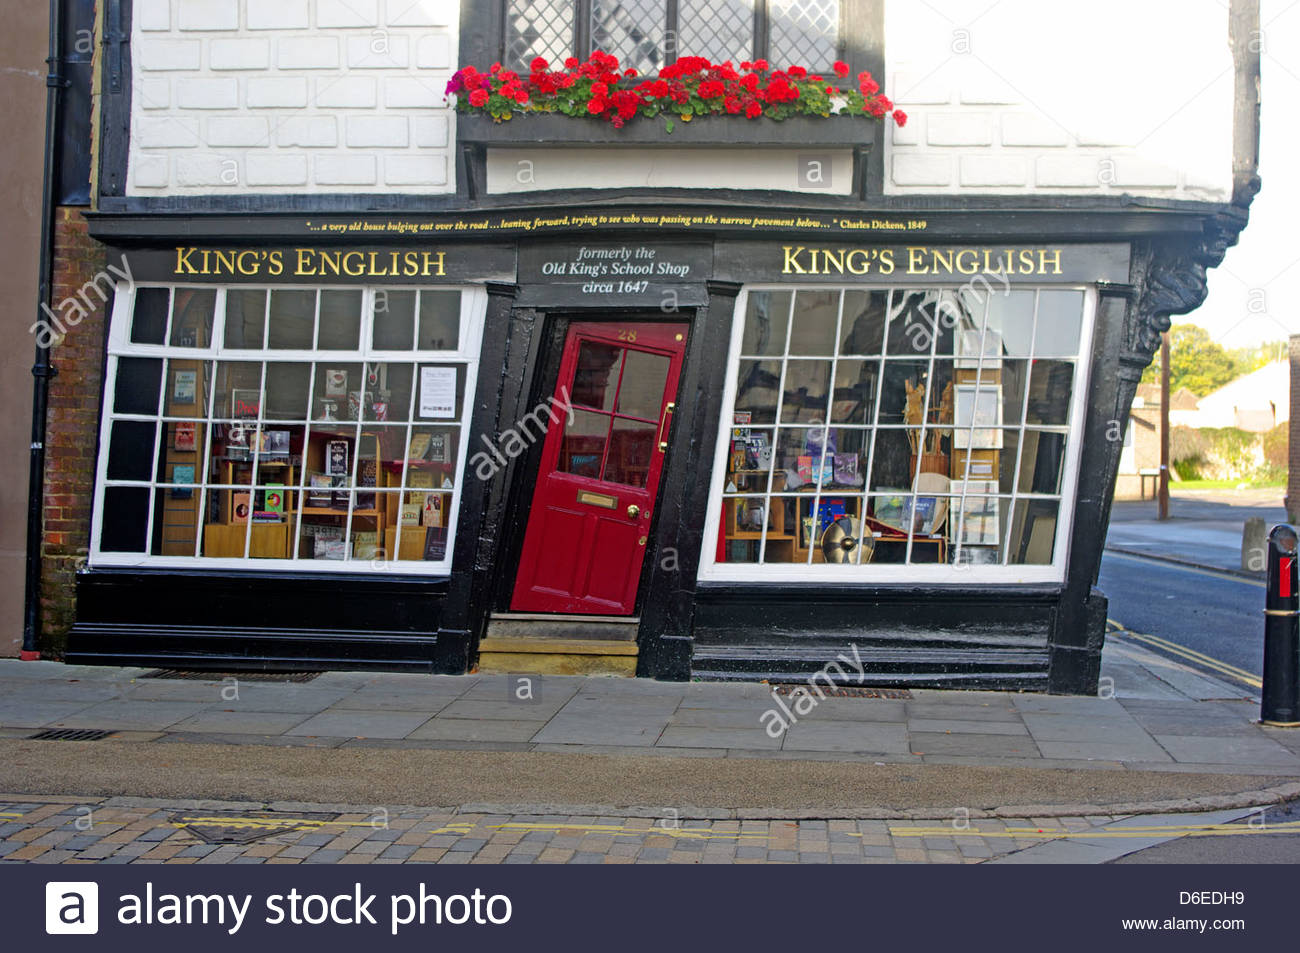 Canterbury Kent Book Shop Formerly Old Kings School Shop 1647 - Stock Image